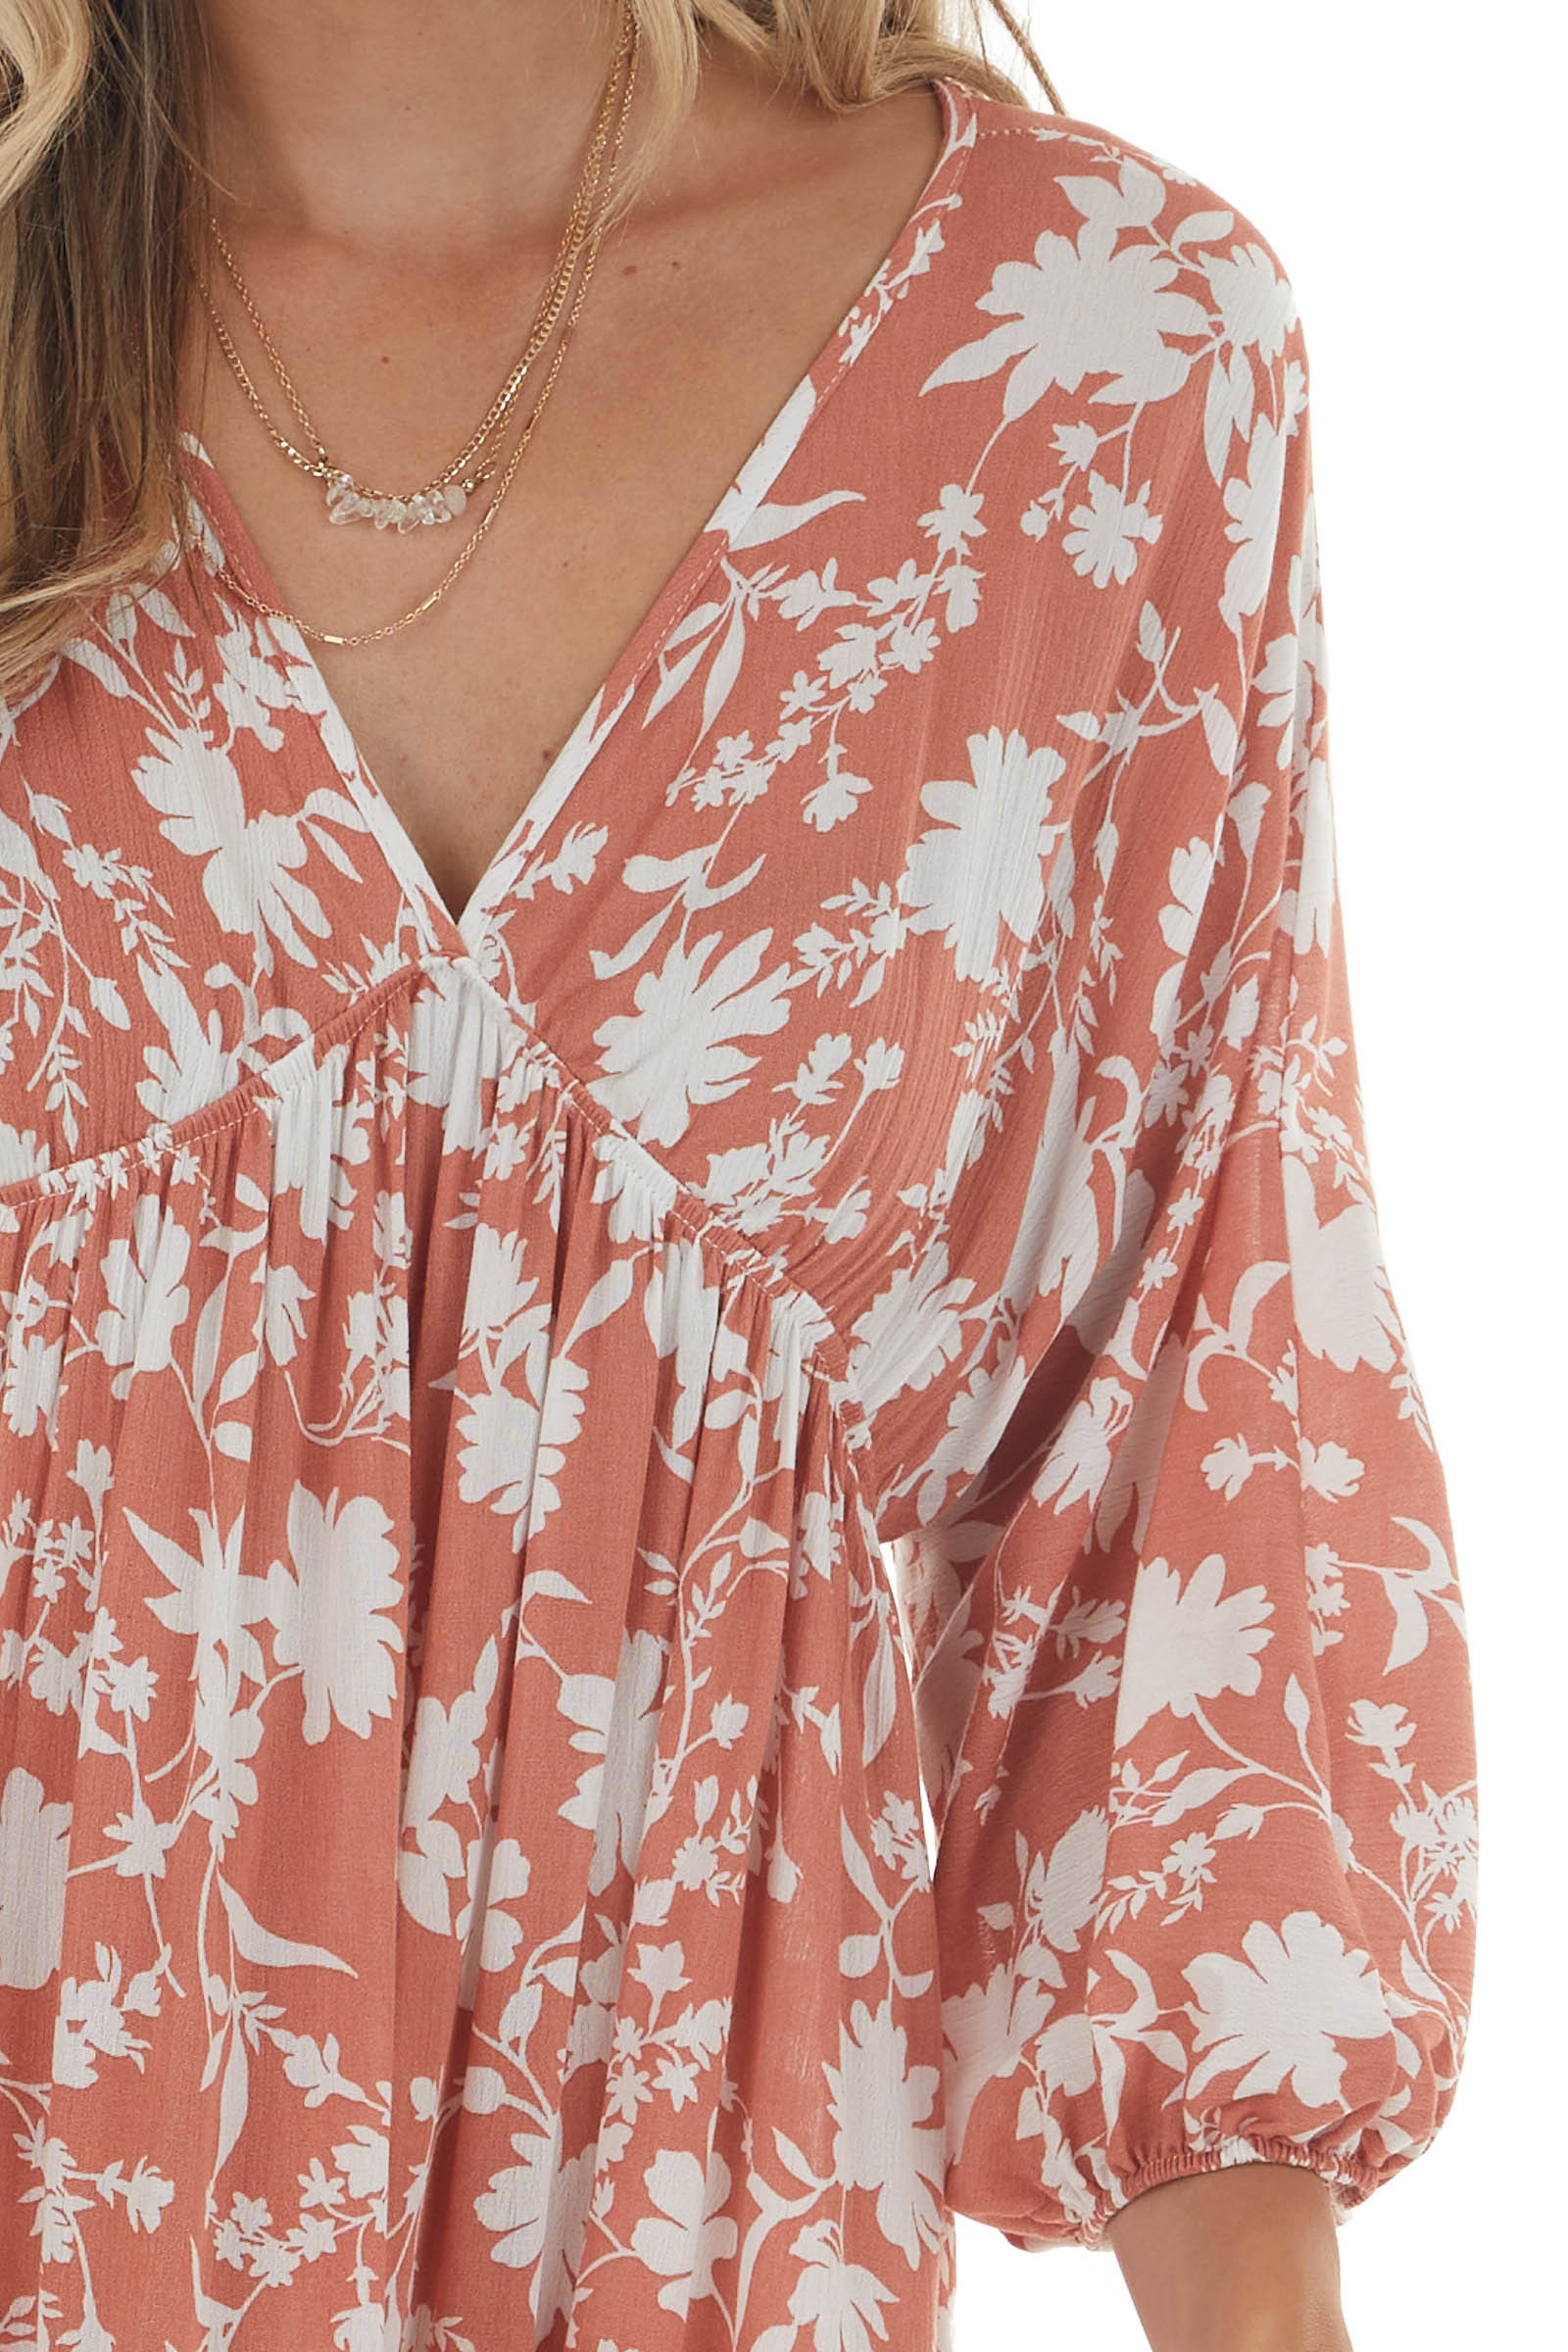 Dusty Coral and White Floral Dress with Bubble Sleeves